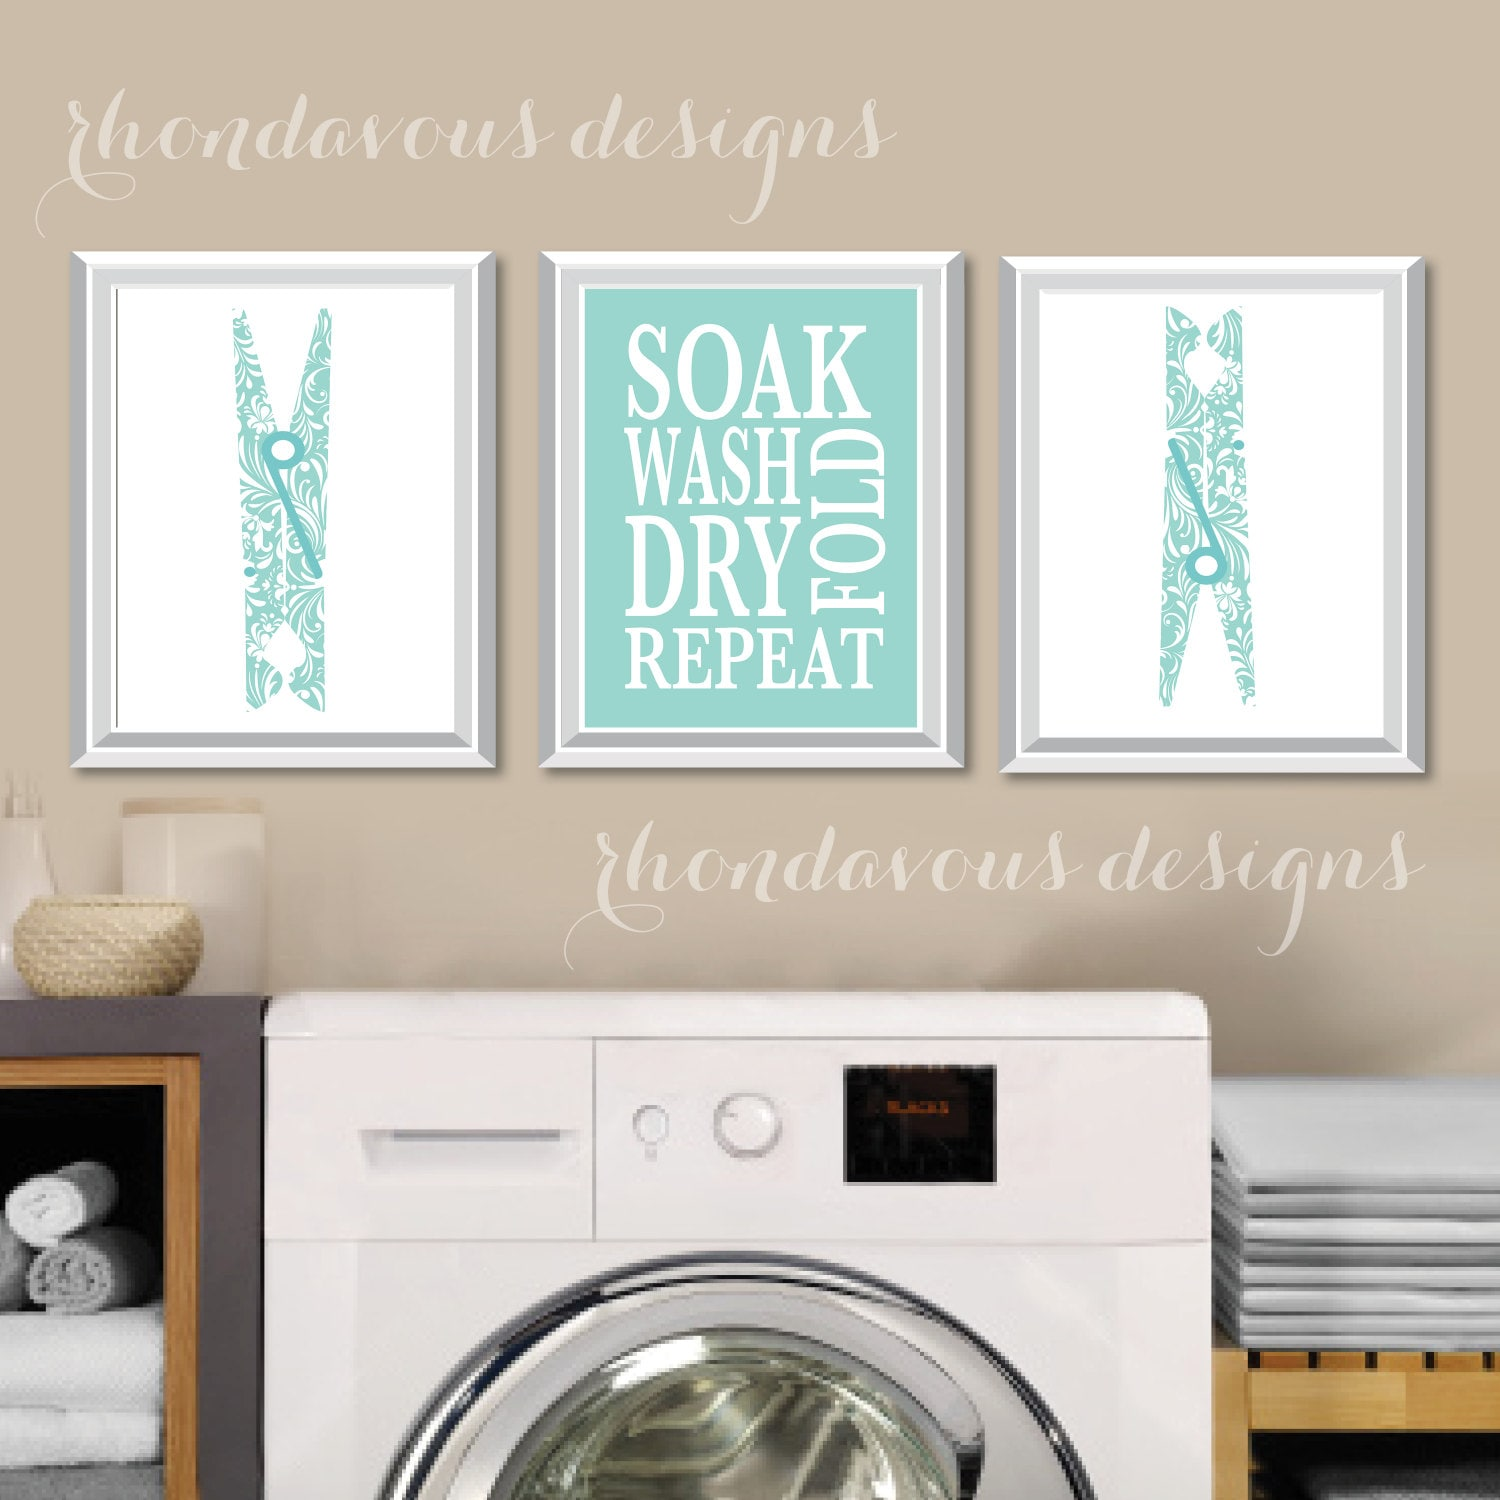 Laundry Room Wall Decor Stickers Extraordinary Laundry Room Art Print Laundry Room Sign Laundry Room Design Inspiration